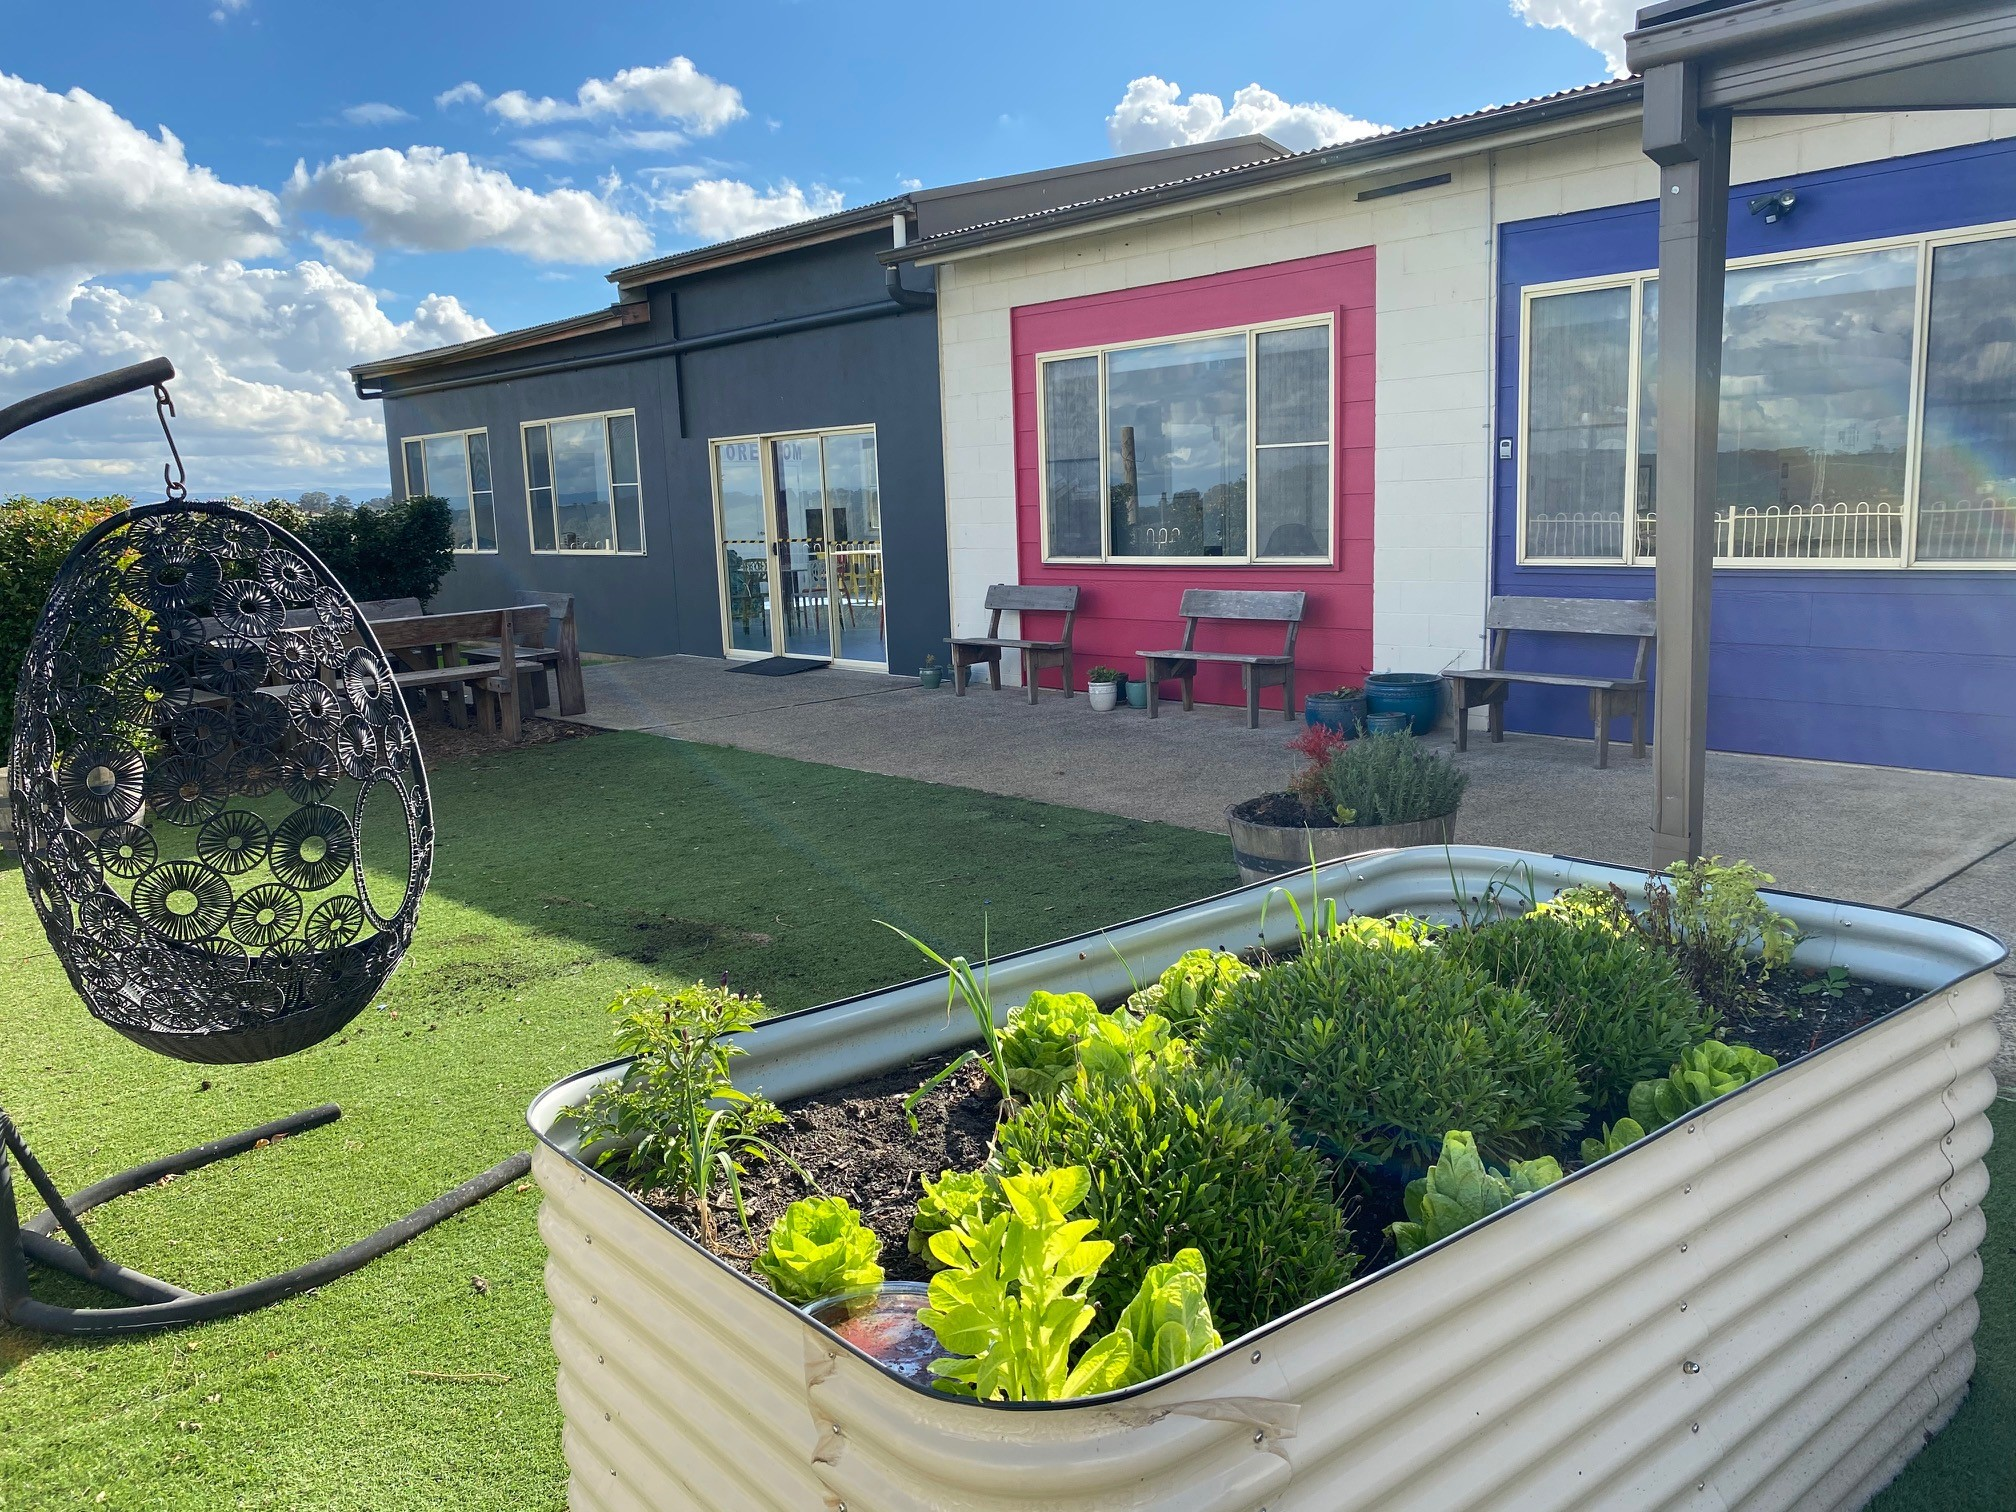 Faux grass area with seating and a vegetable planter box in the alfresco area at the McCall Gardens community participation program centre.